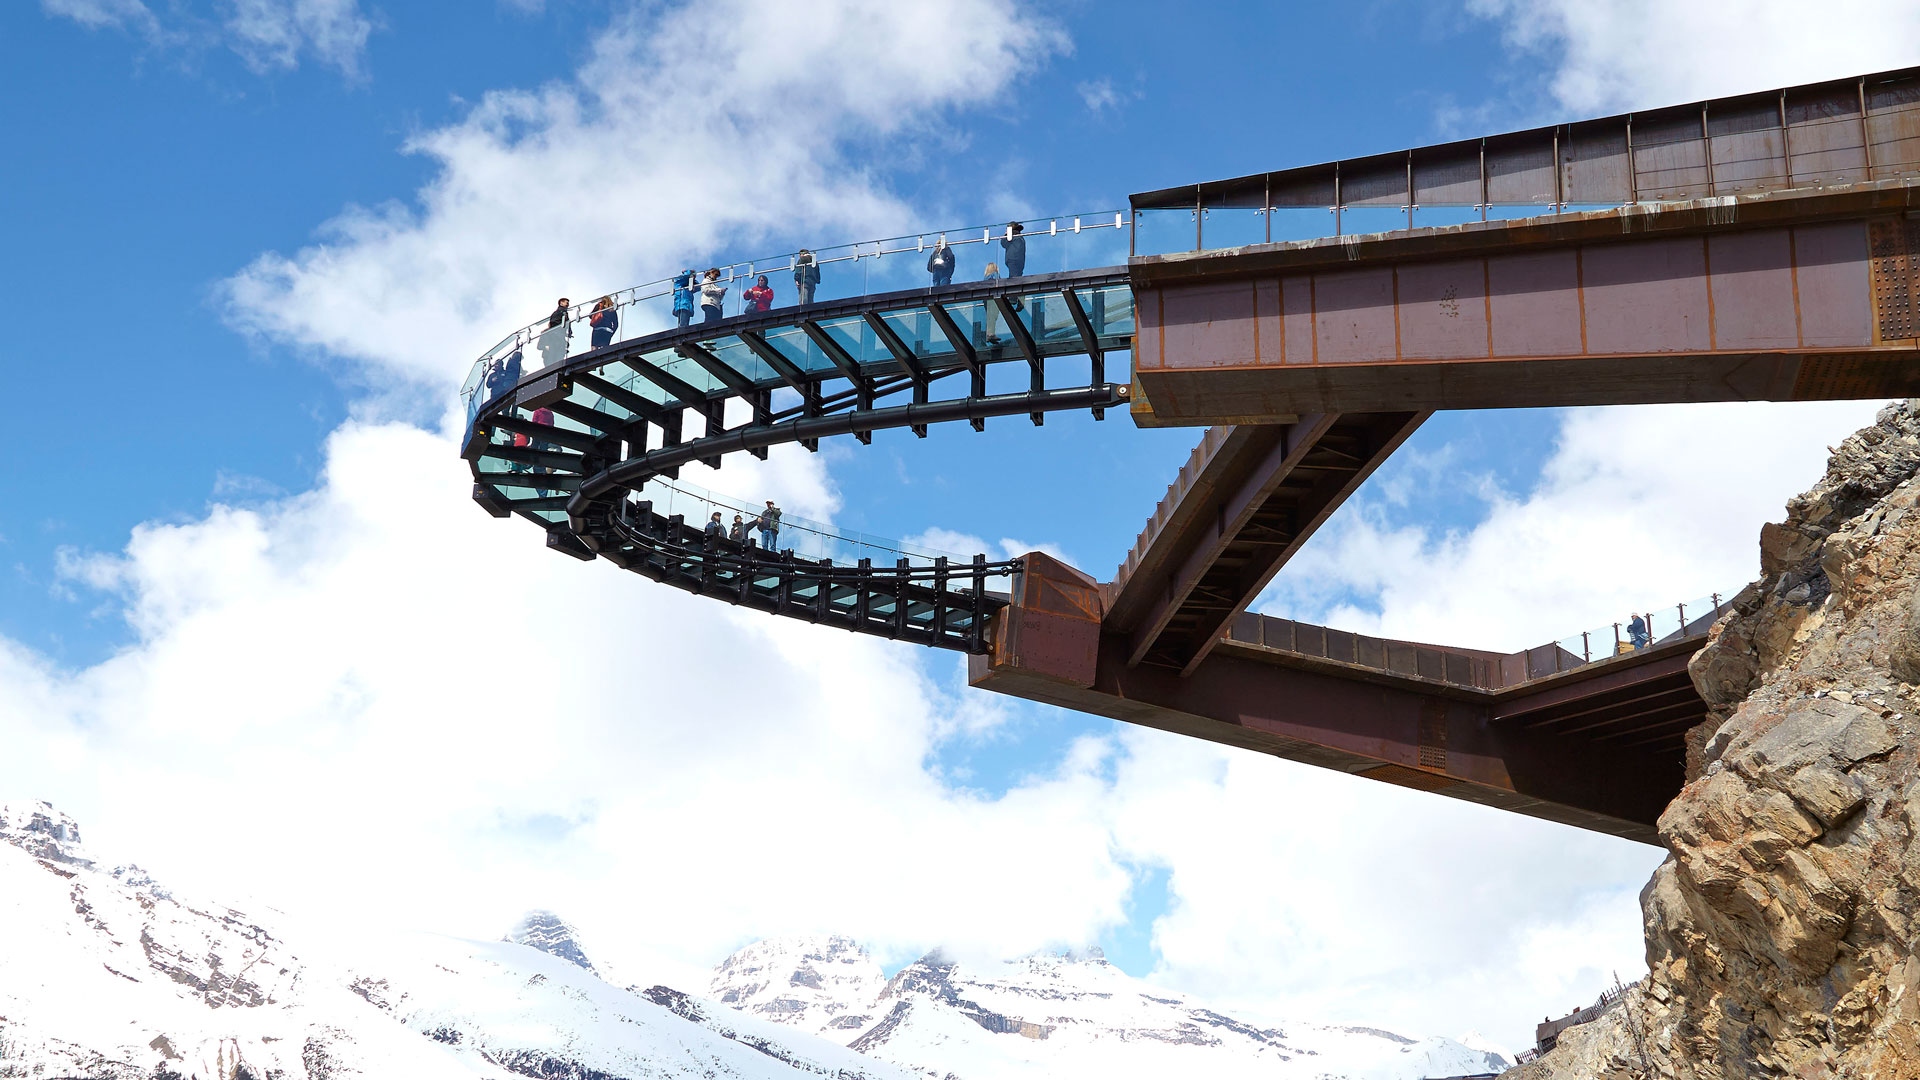 Columbia Icefield Skywalk Construction